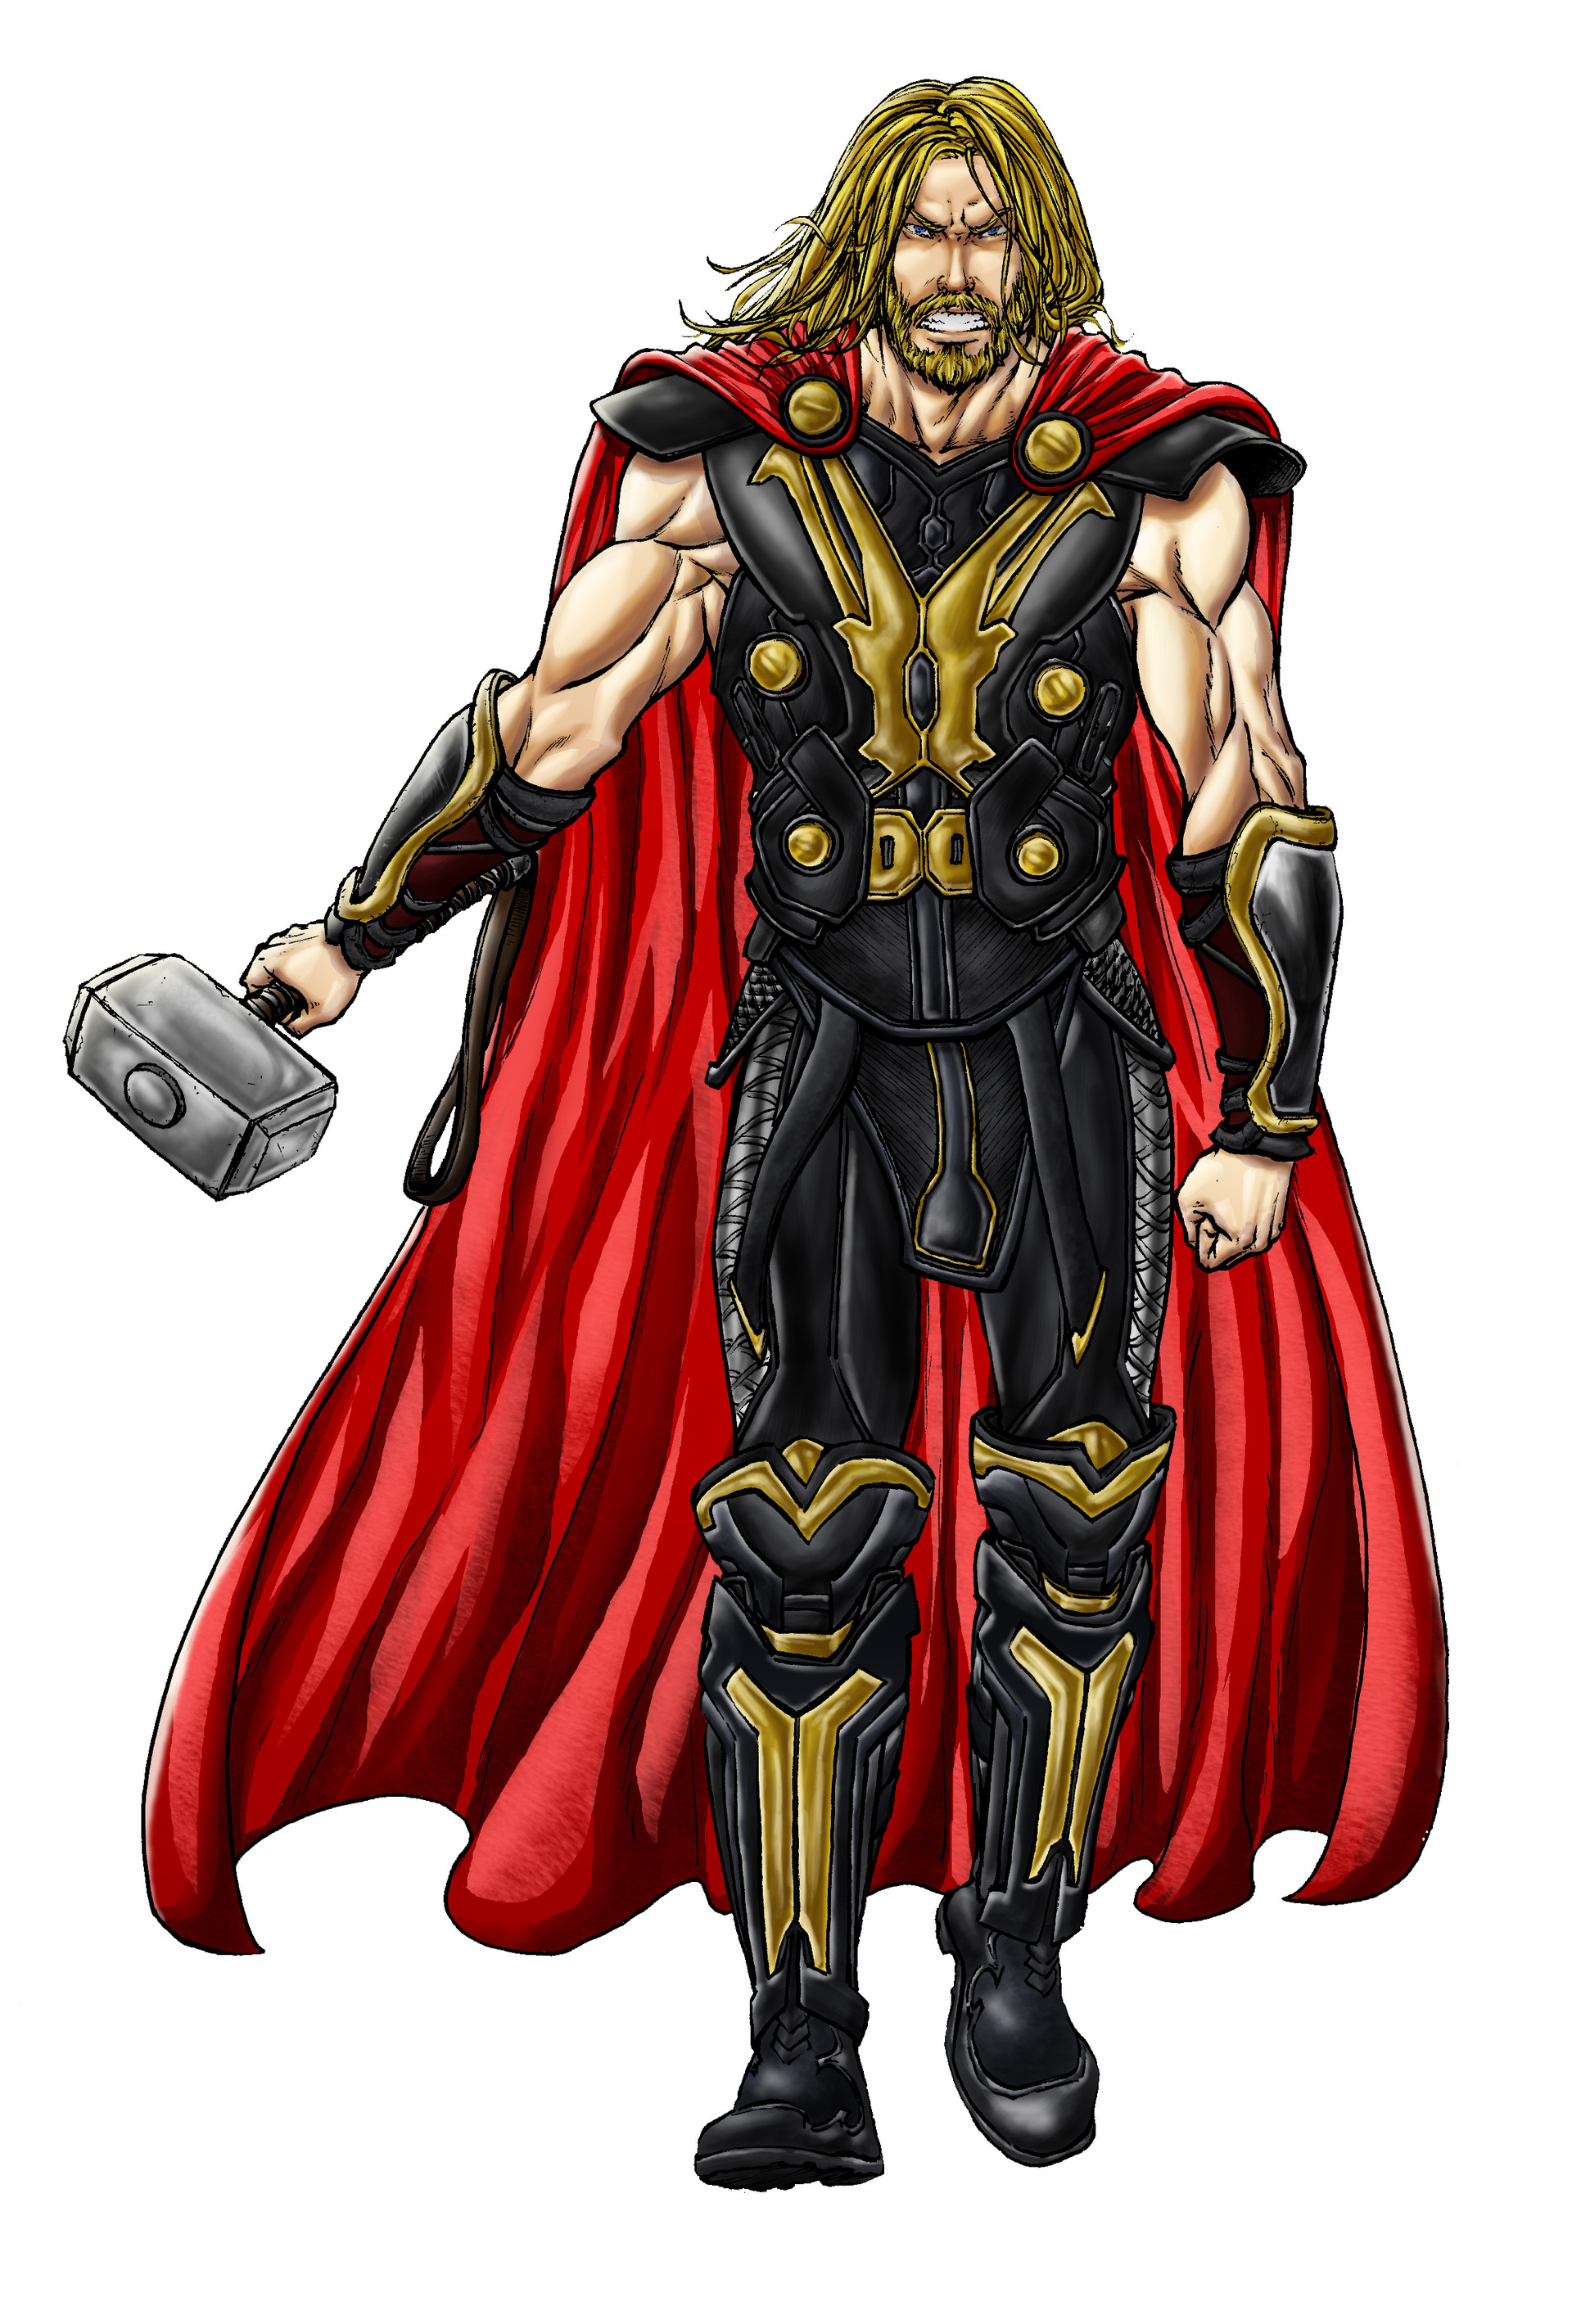 Gustavo melo thor color